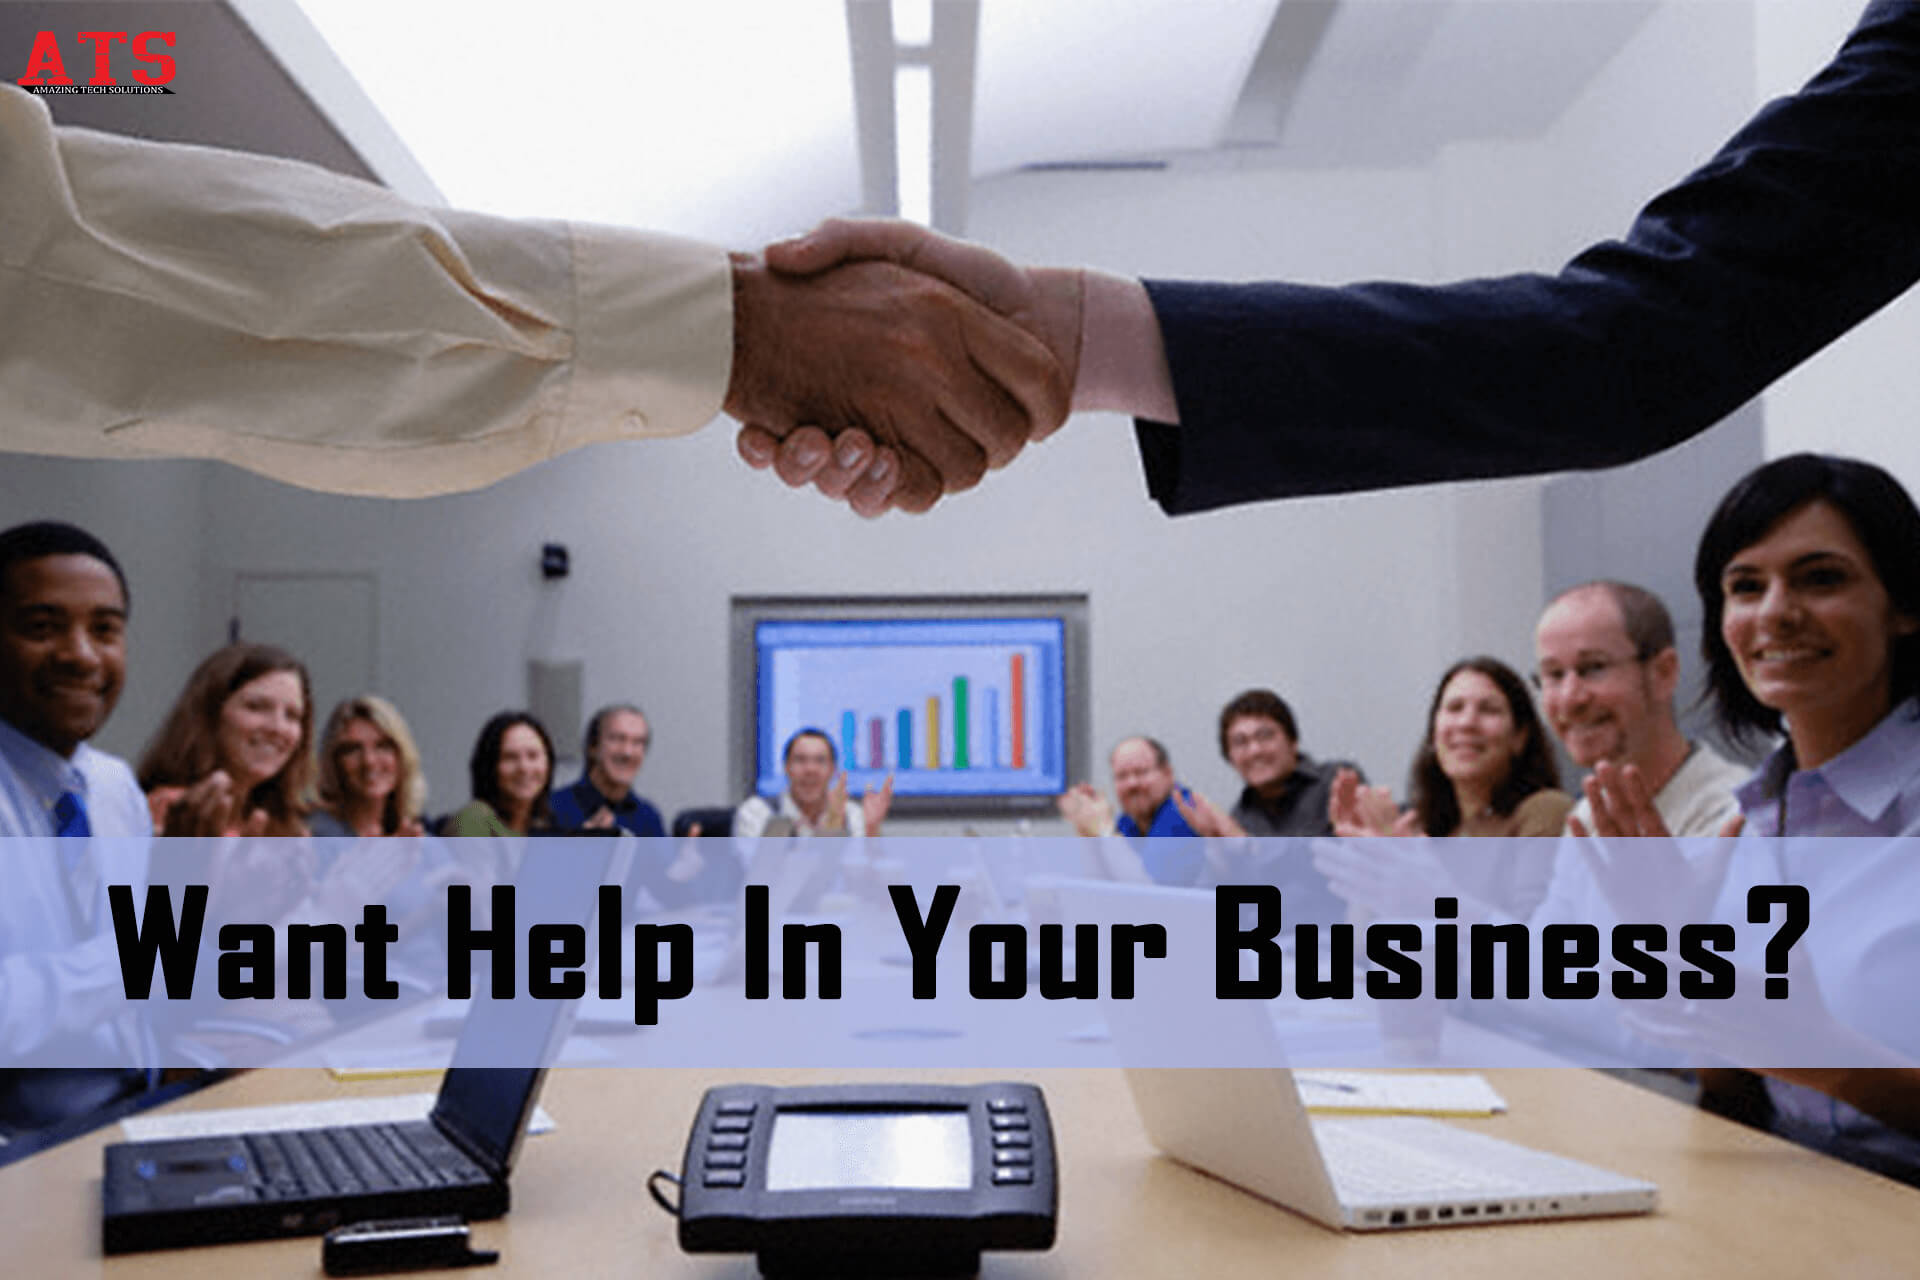 Want help in your business